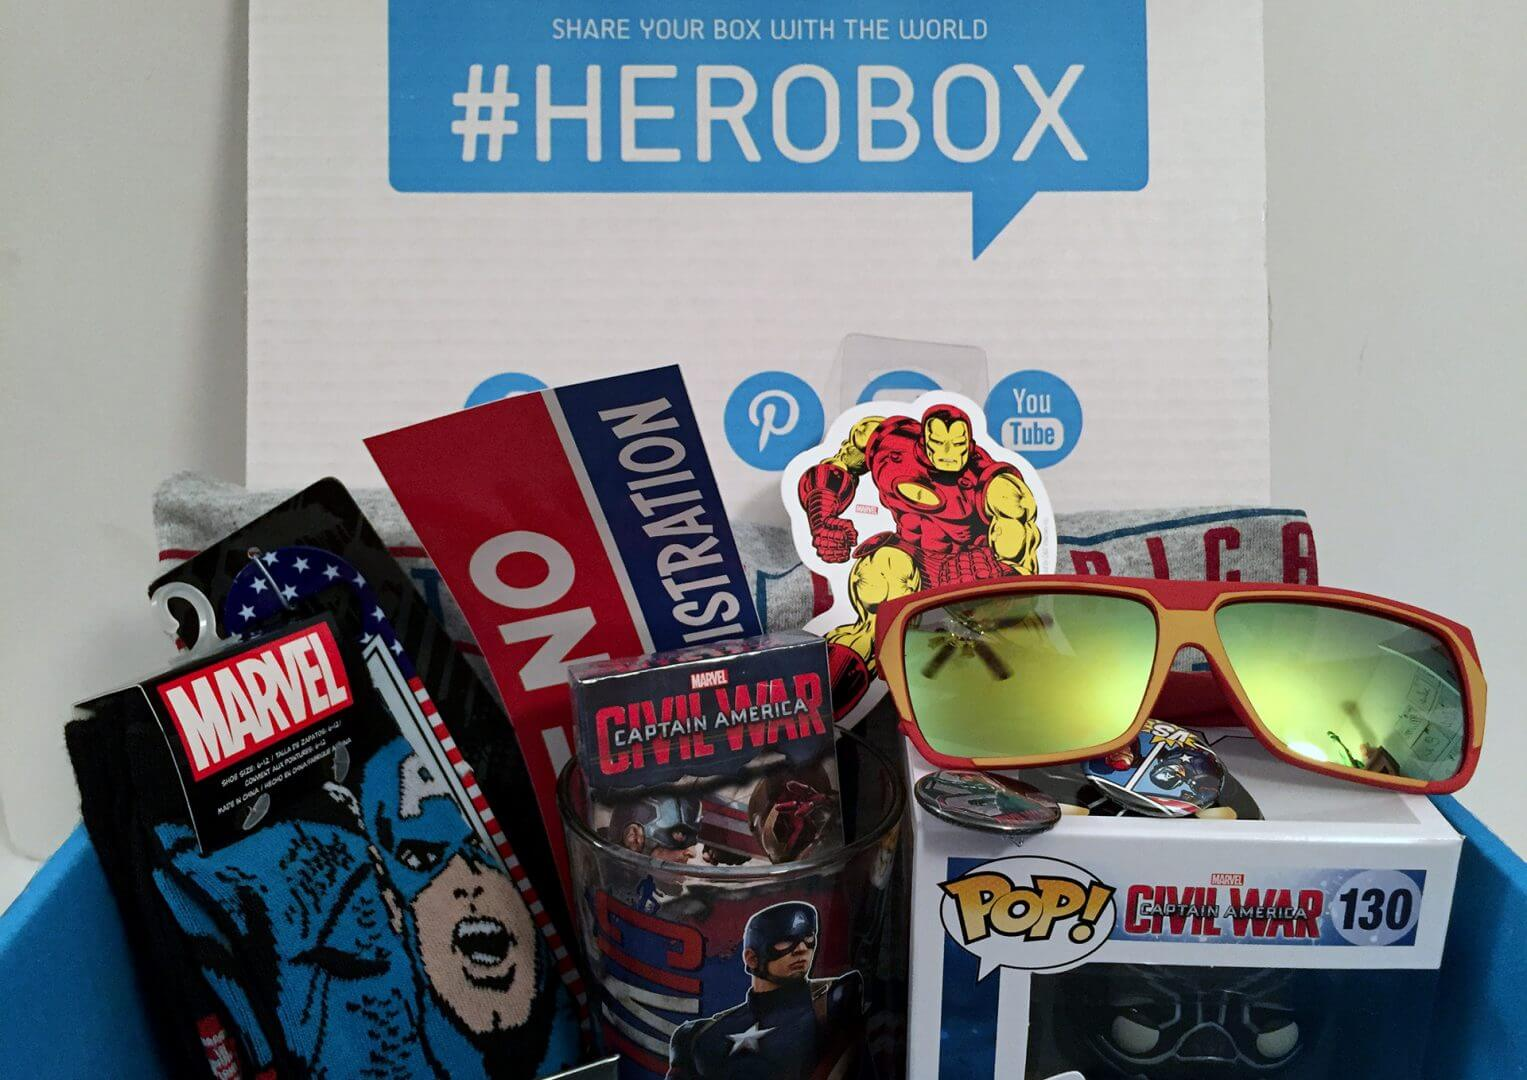 SuperHero Stuff: Captain America: Civil War HeroBox - Review